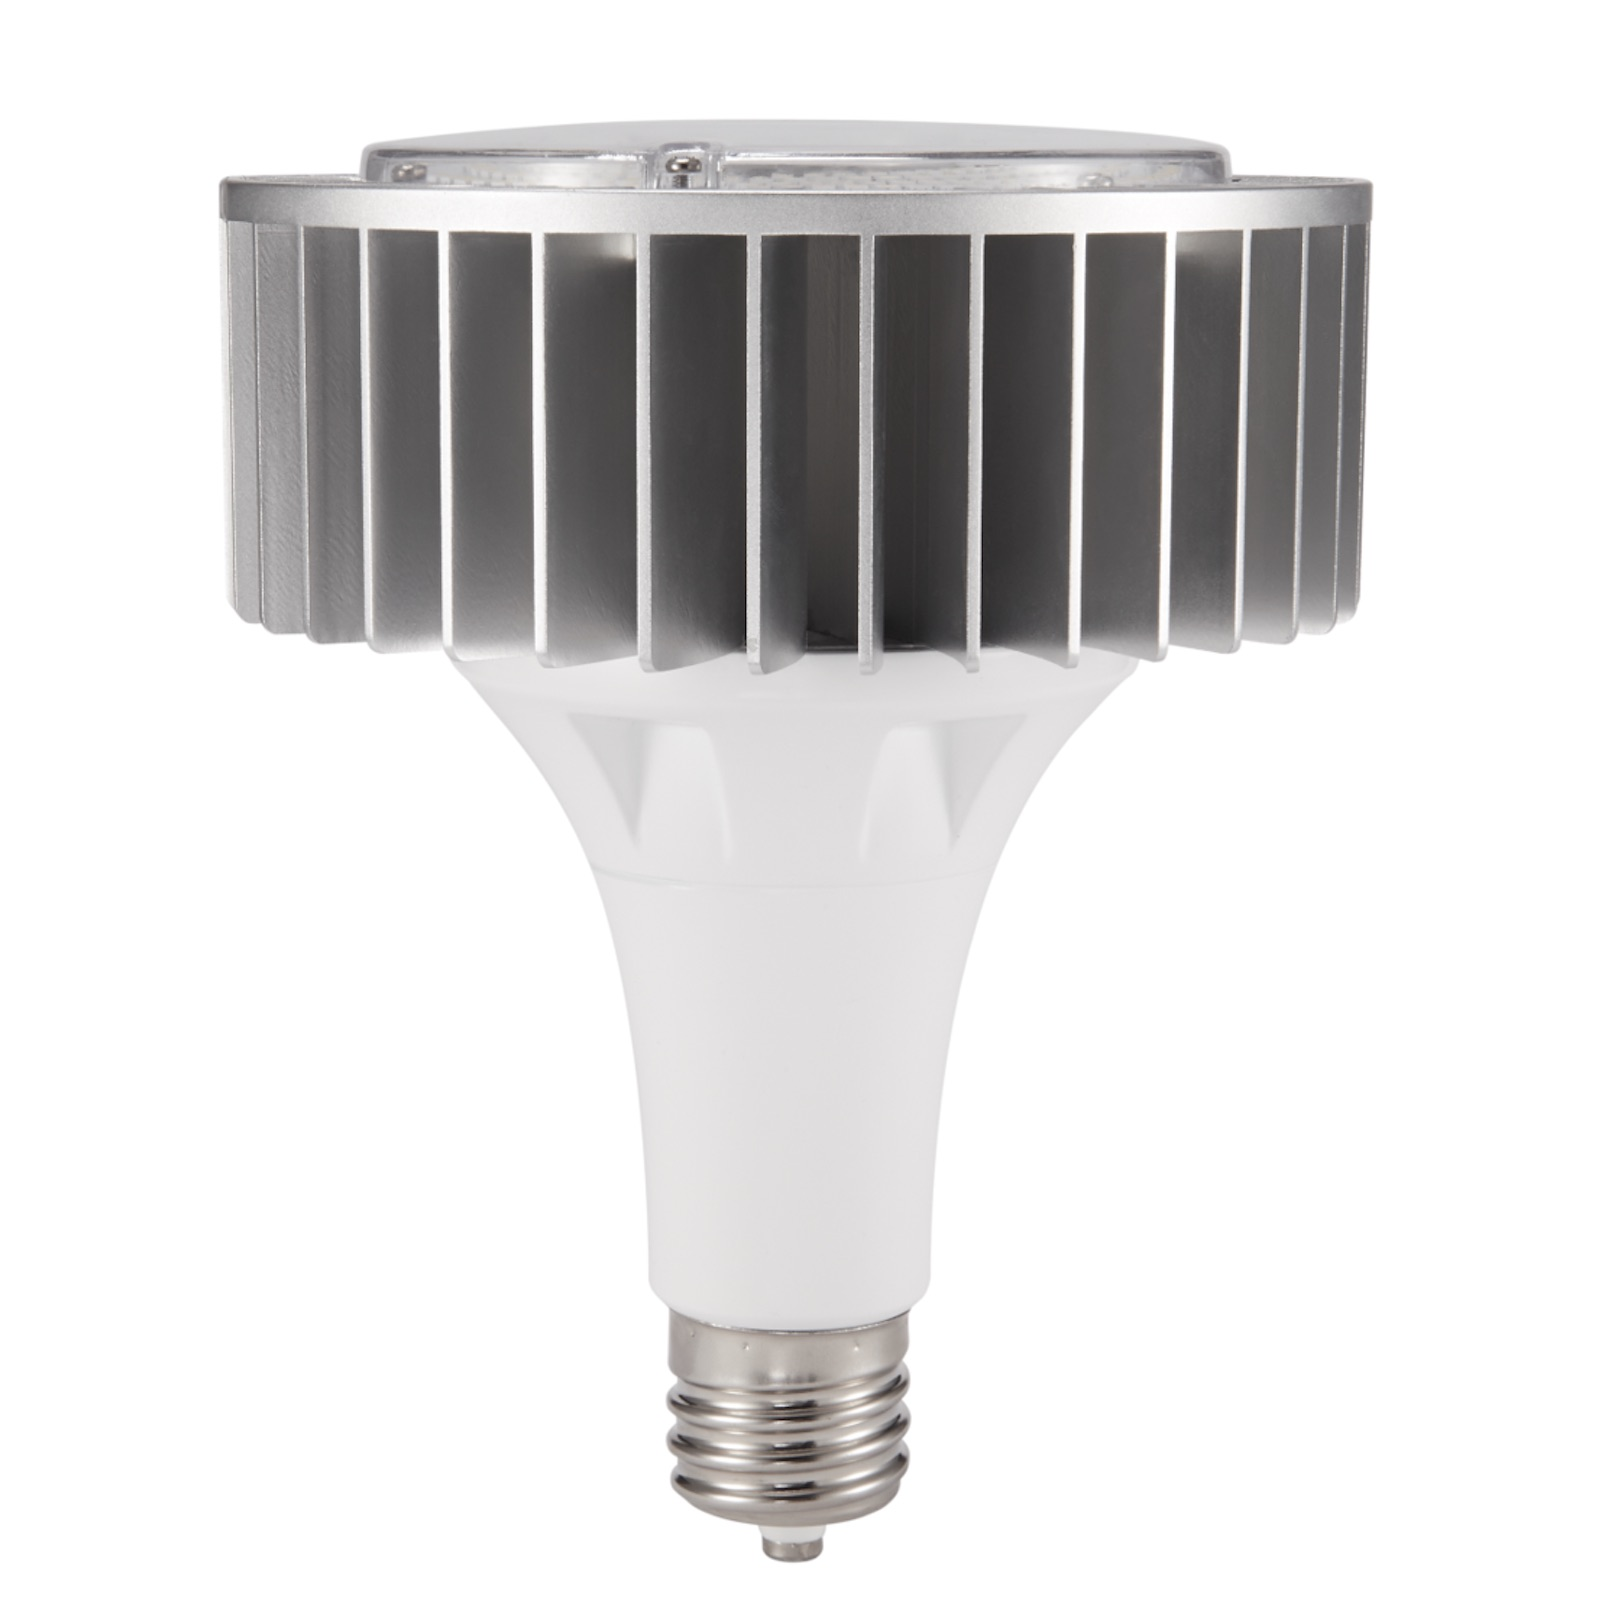 J Series led lamp